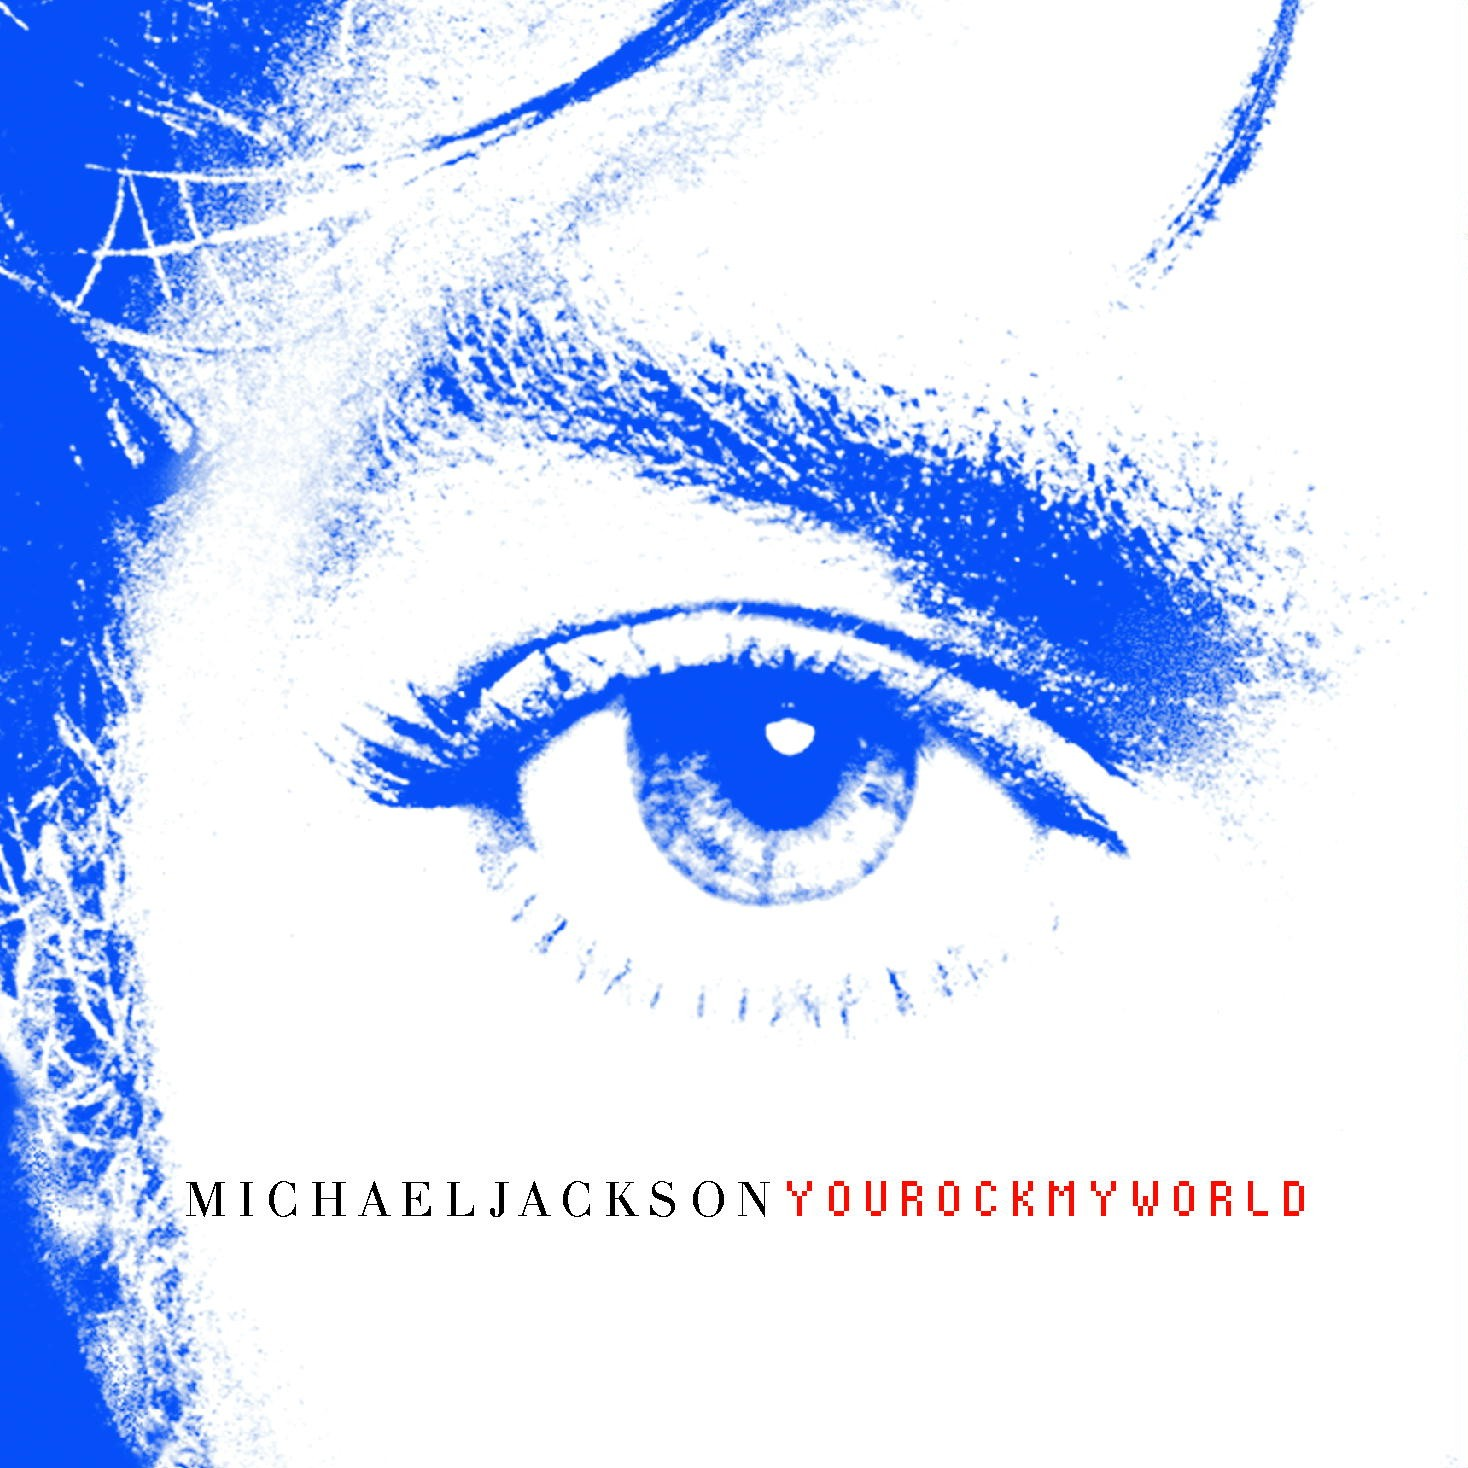 http://3.bp.blogspot.com/_mupIVJbjvuU/TE8-QRiIjHI/AAAAAAAAFbw/i0Py5Md8uLc/s1600/Michael+Jackson+-+You+Rock+My+World+(Official+Single+Cover).jpg